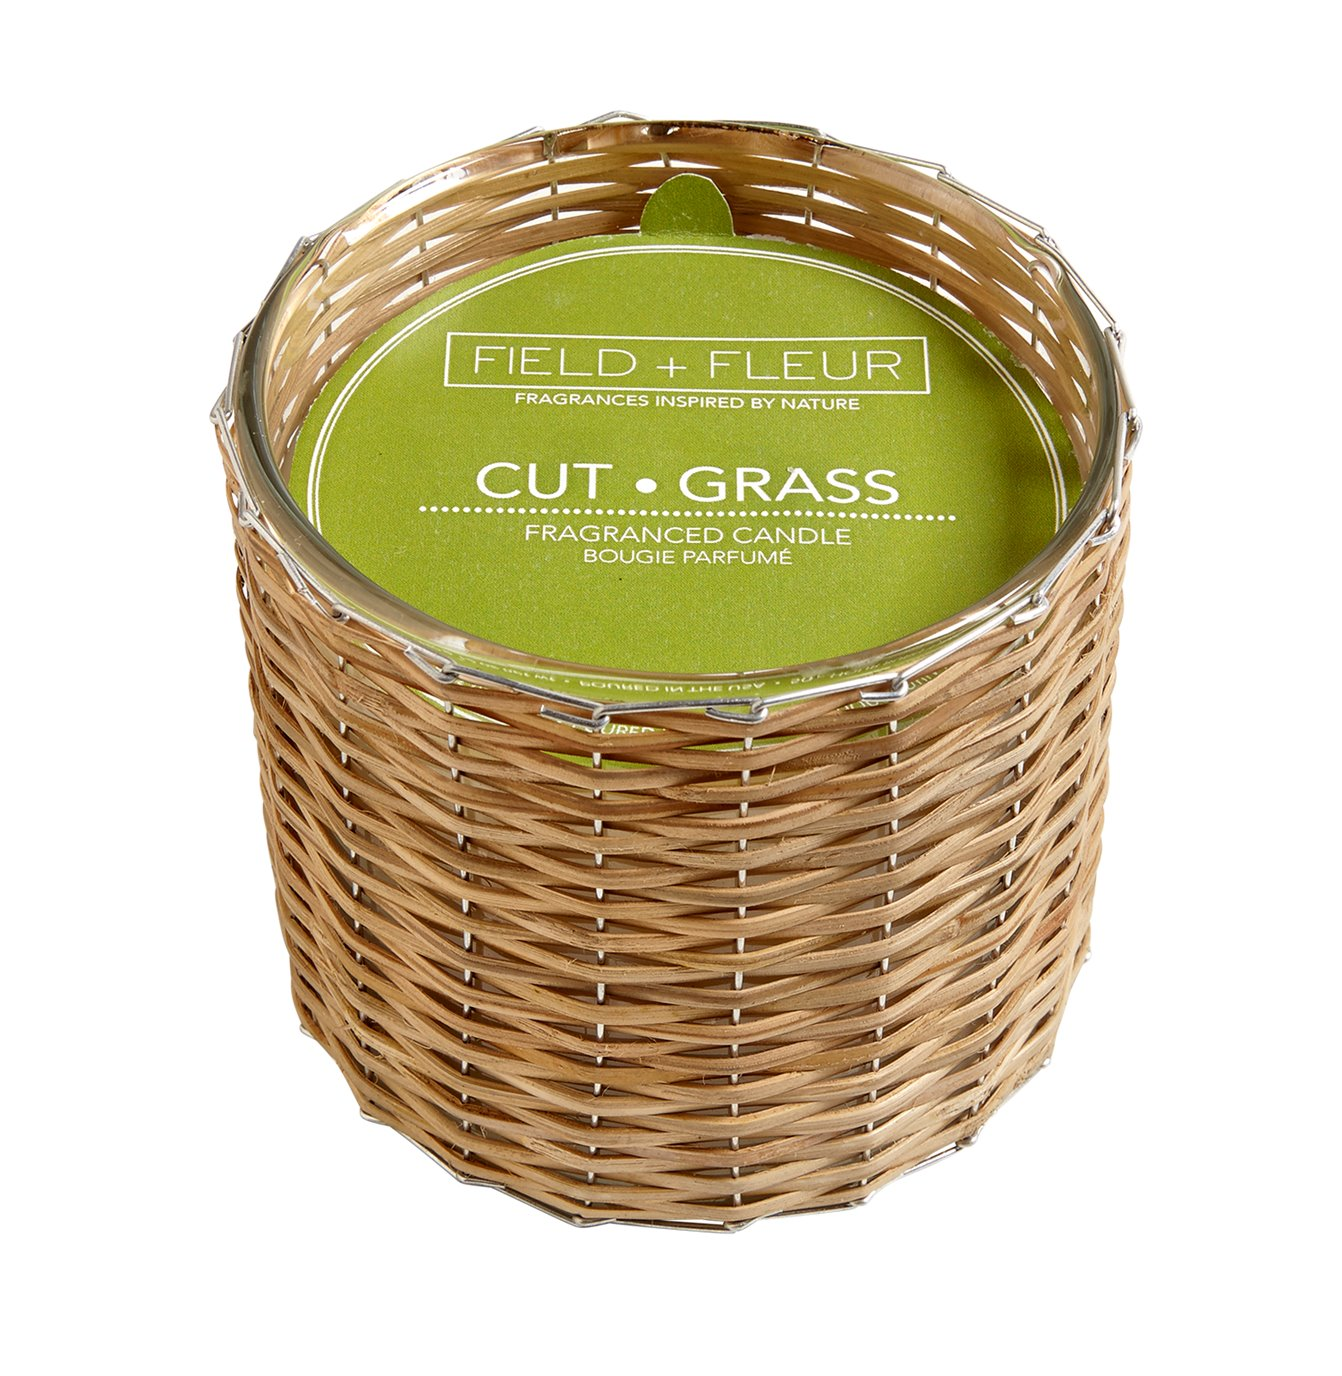 FIELD + FLEUR Cut Grass 2 Wick Handwoven Candle 12 oz